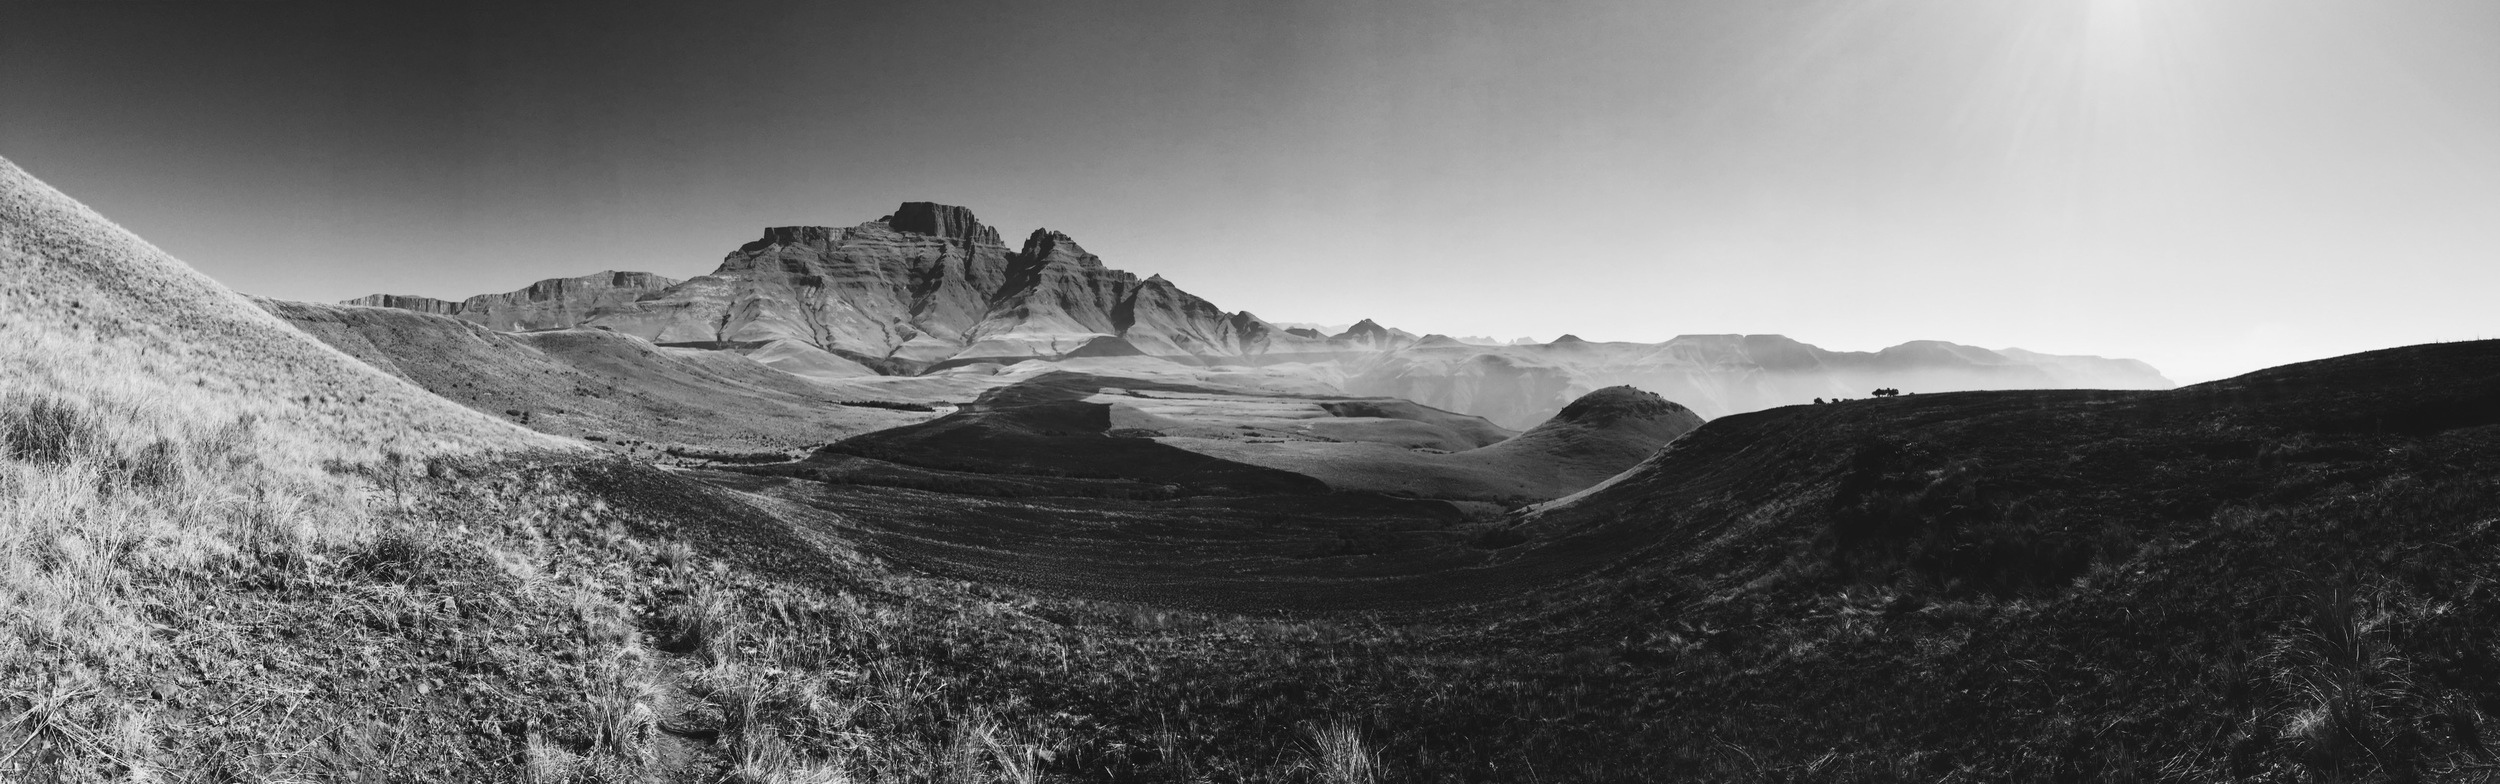 Drakensburg iphone special.